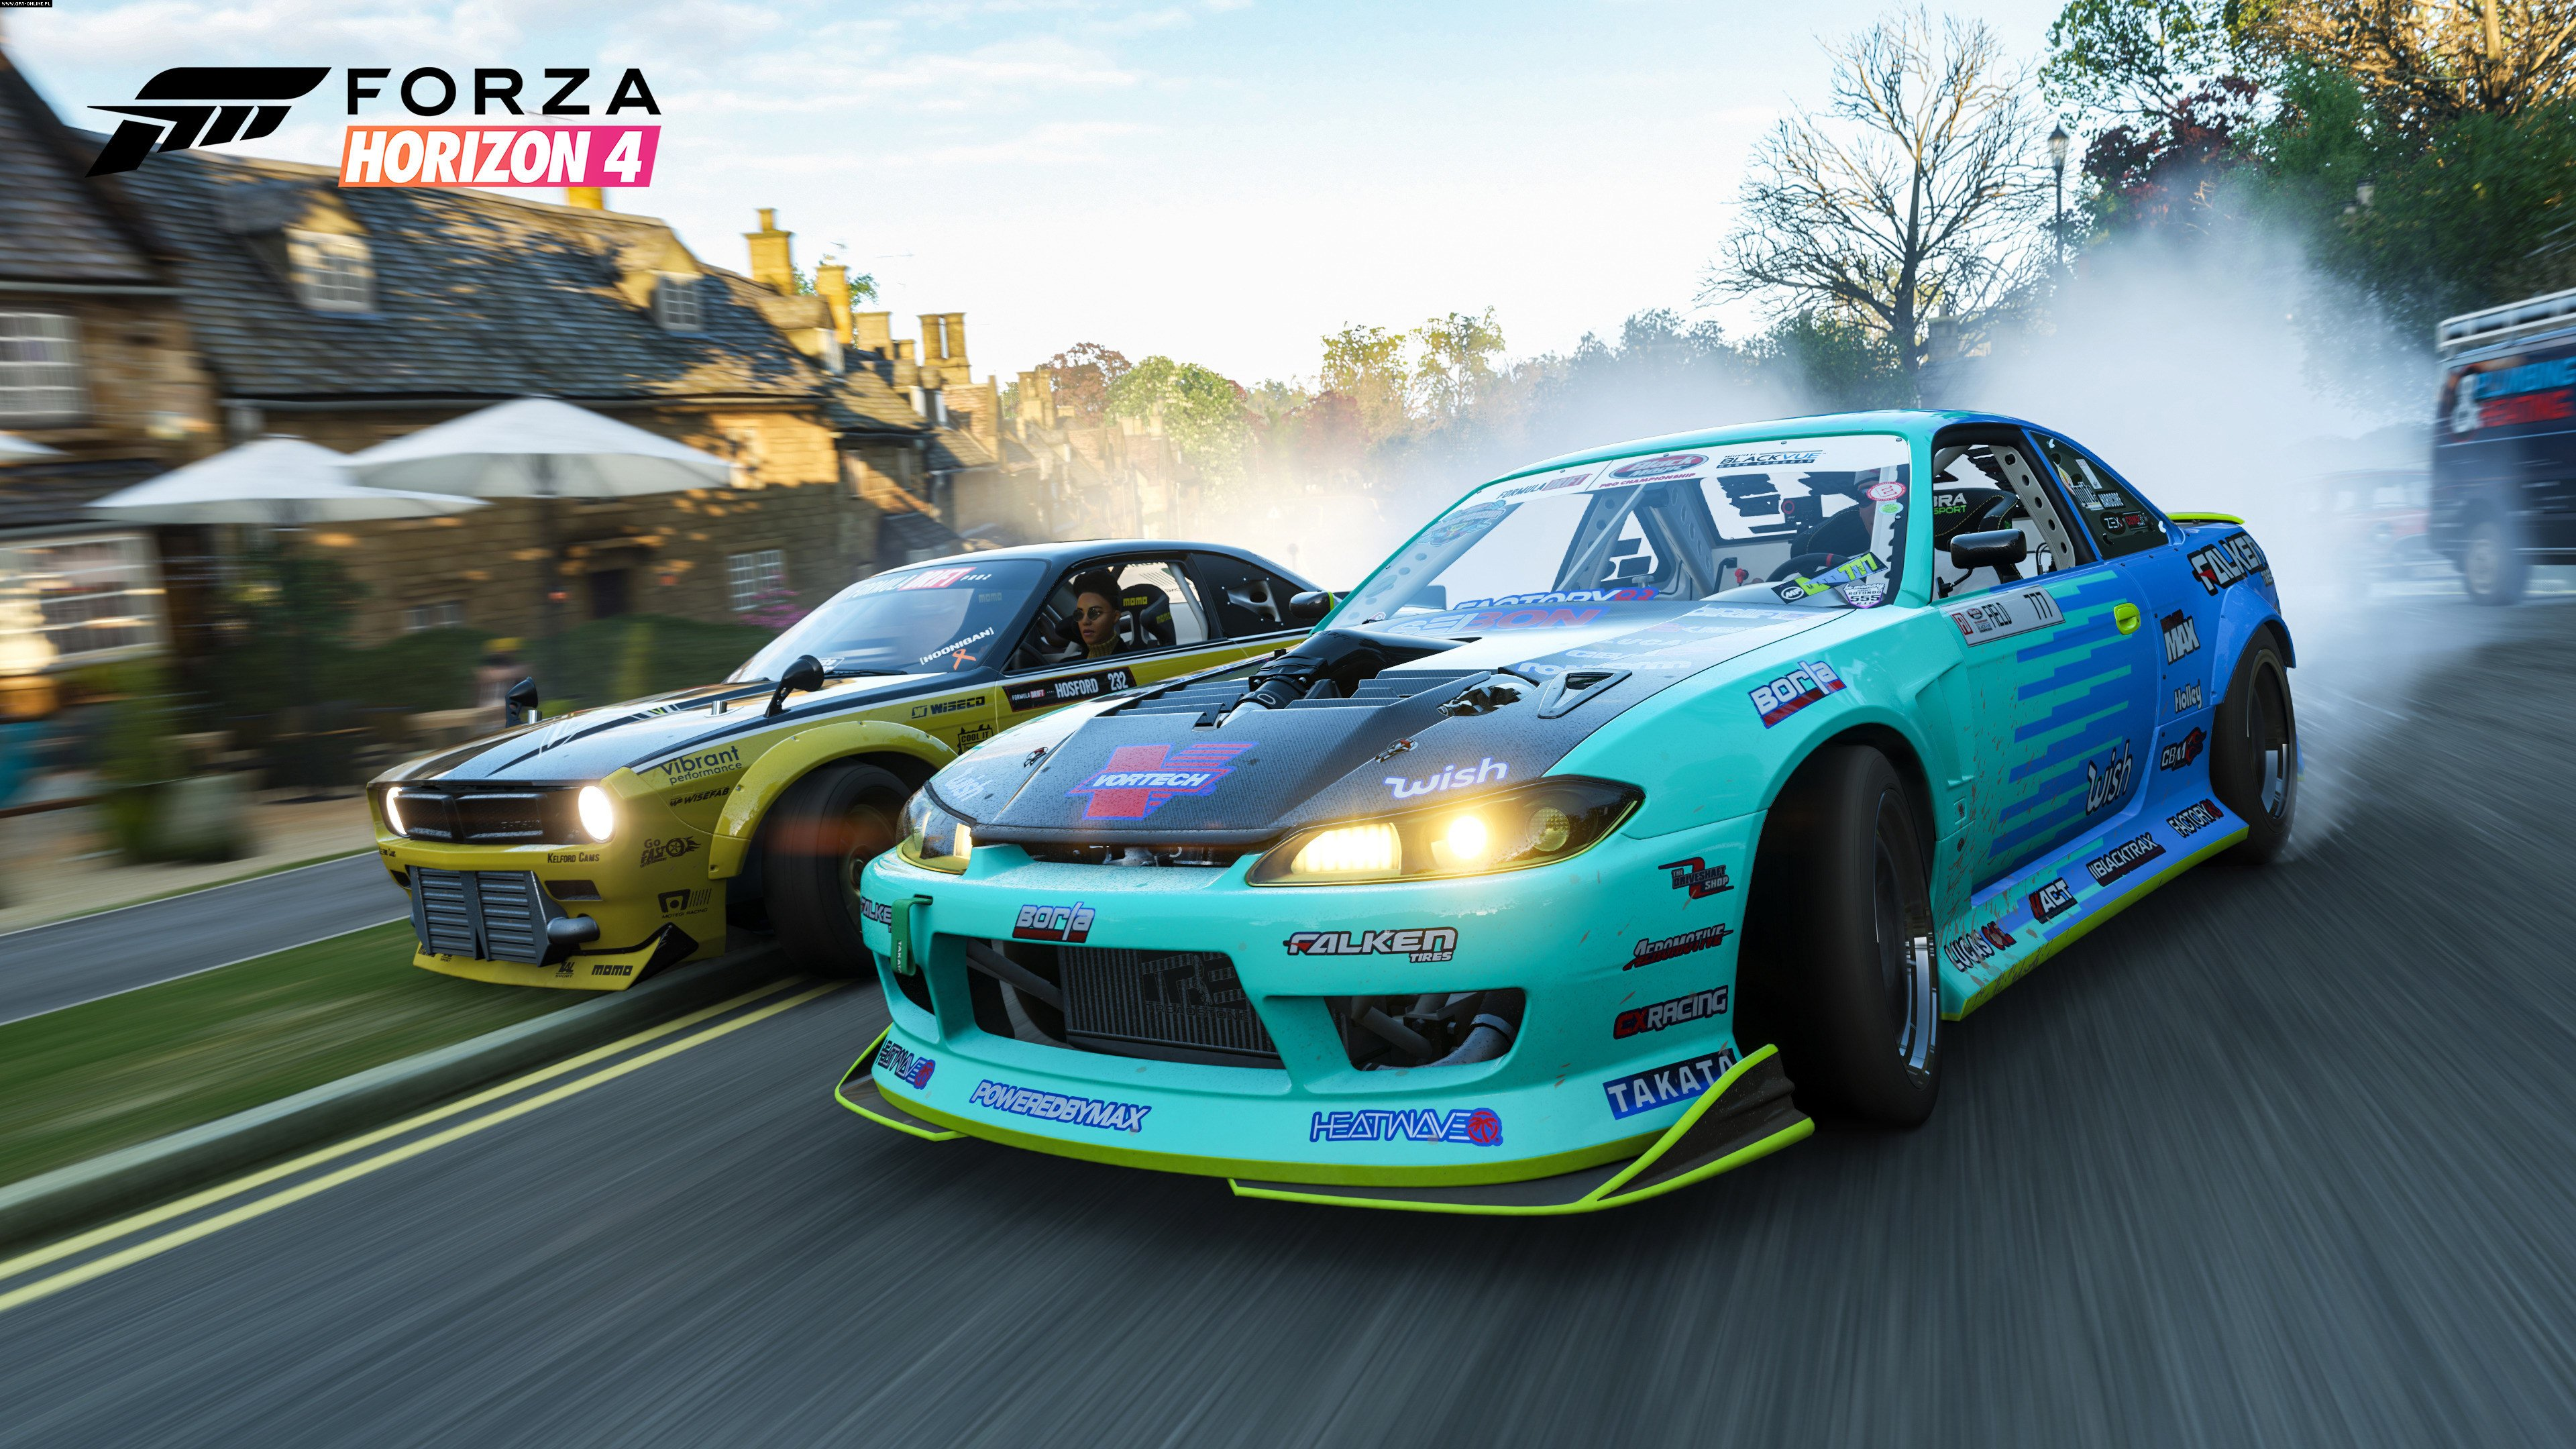 Forza Horizon 4 download PC | Bandits Game - Download and hack